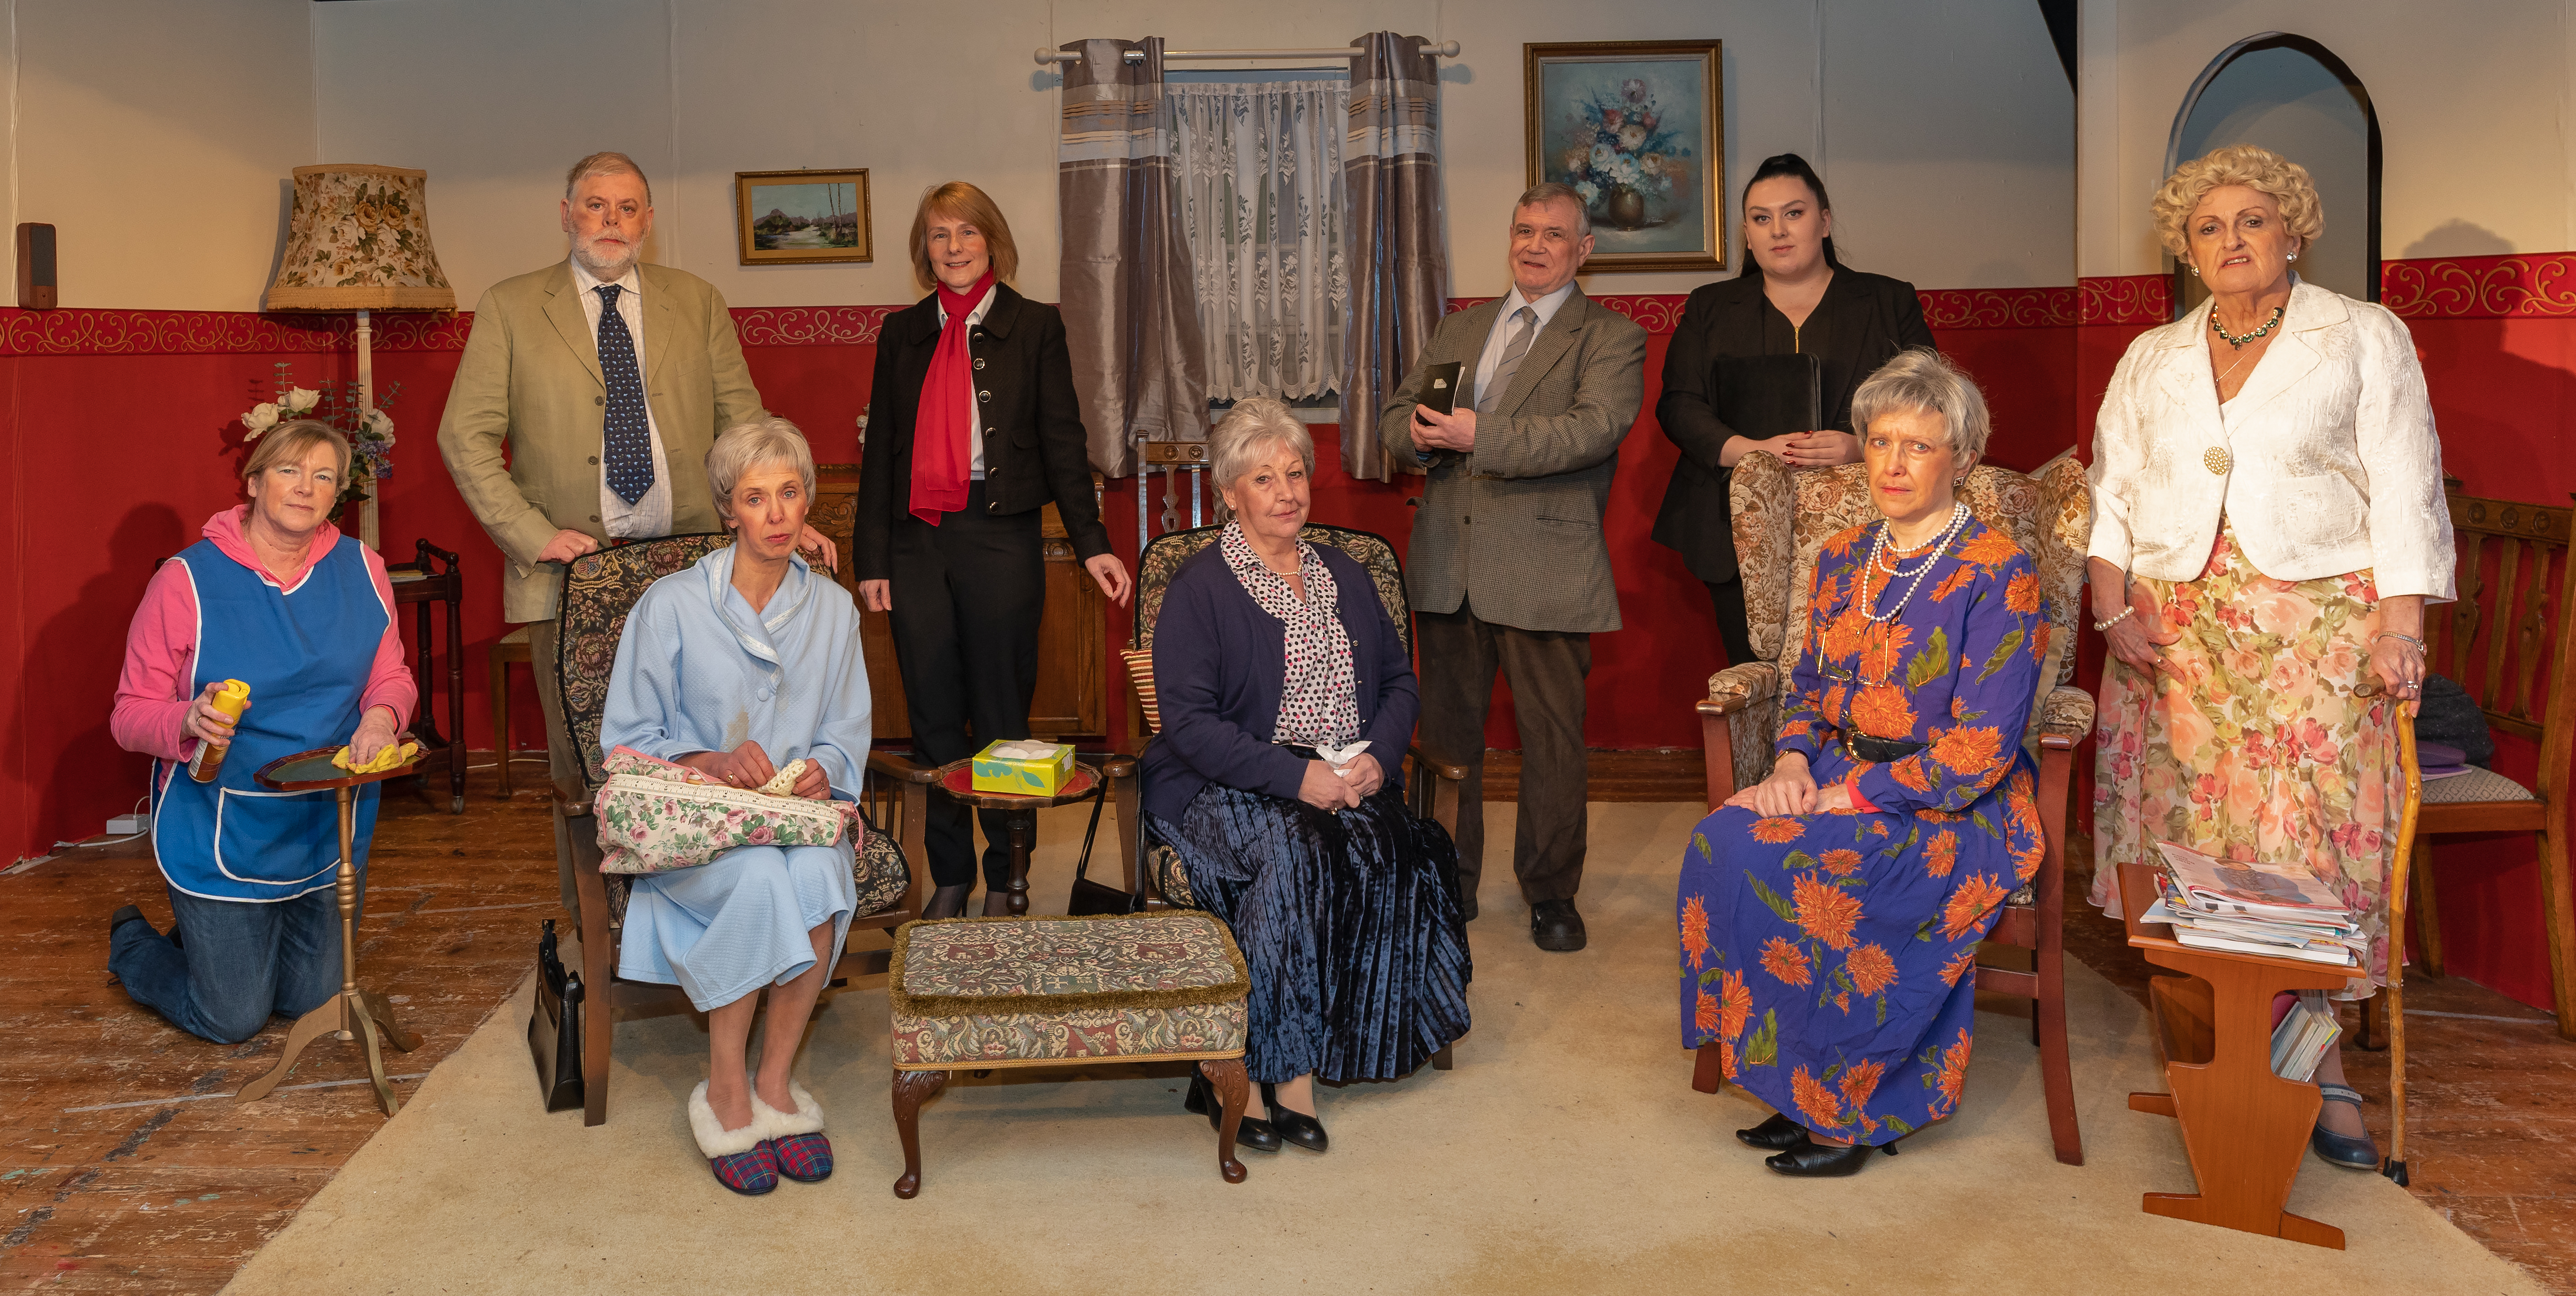 """This is the cast of the Theatre company LADS  murder mystery show in two acts called """"Annie, One, Two, Three"""" by David Summers.  The cast are, Martha - Anne McMullen, Mary - Charlotte Mountain, Miriam - Estelle Buchanan, Alison - Bery Duncan, Eric - Douglas Clark, Patricia - Alison Miller, Det Inspector Williams - Stewart Friendship, Det Constable Marsham - Sasha Richards and Ruby Penrose - Lynda Bates."""